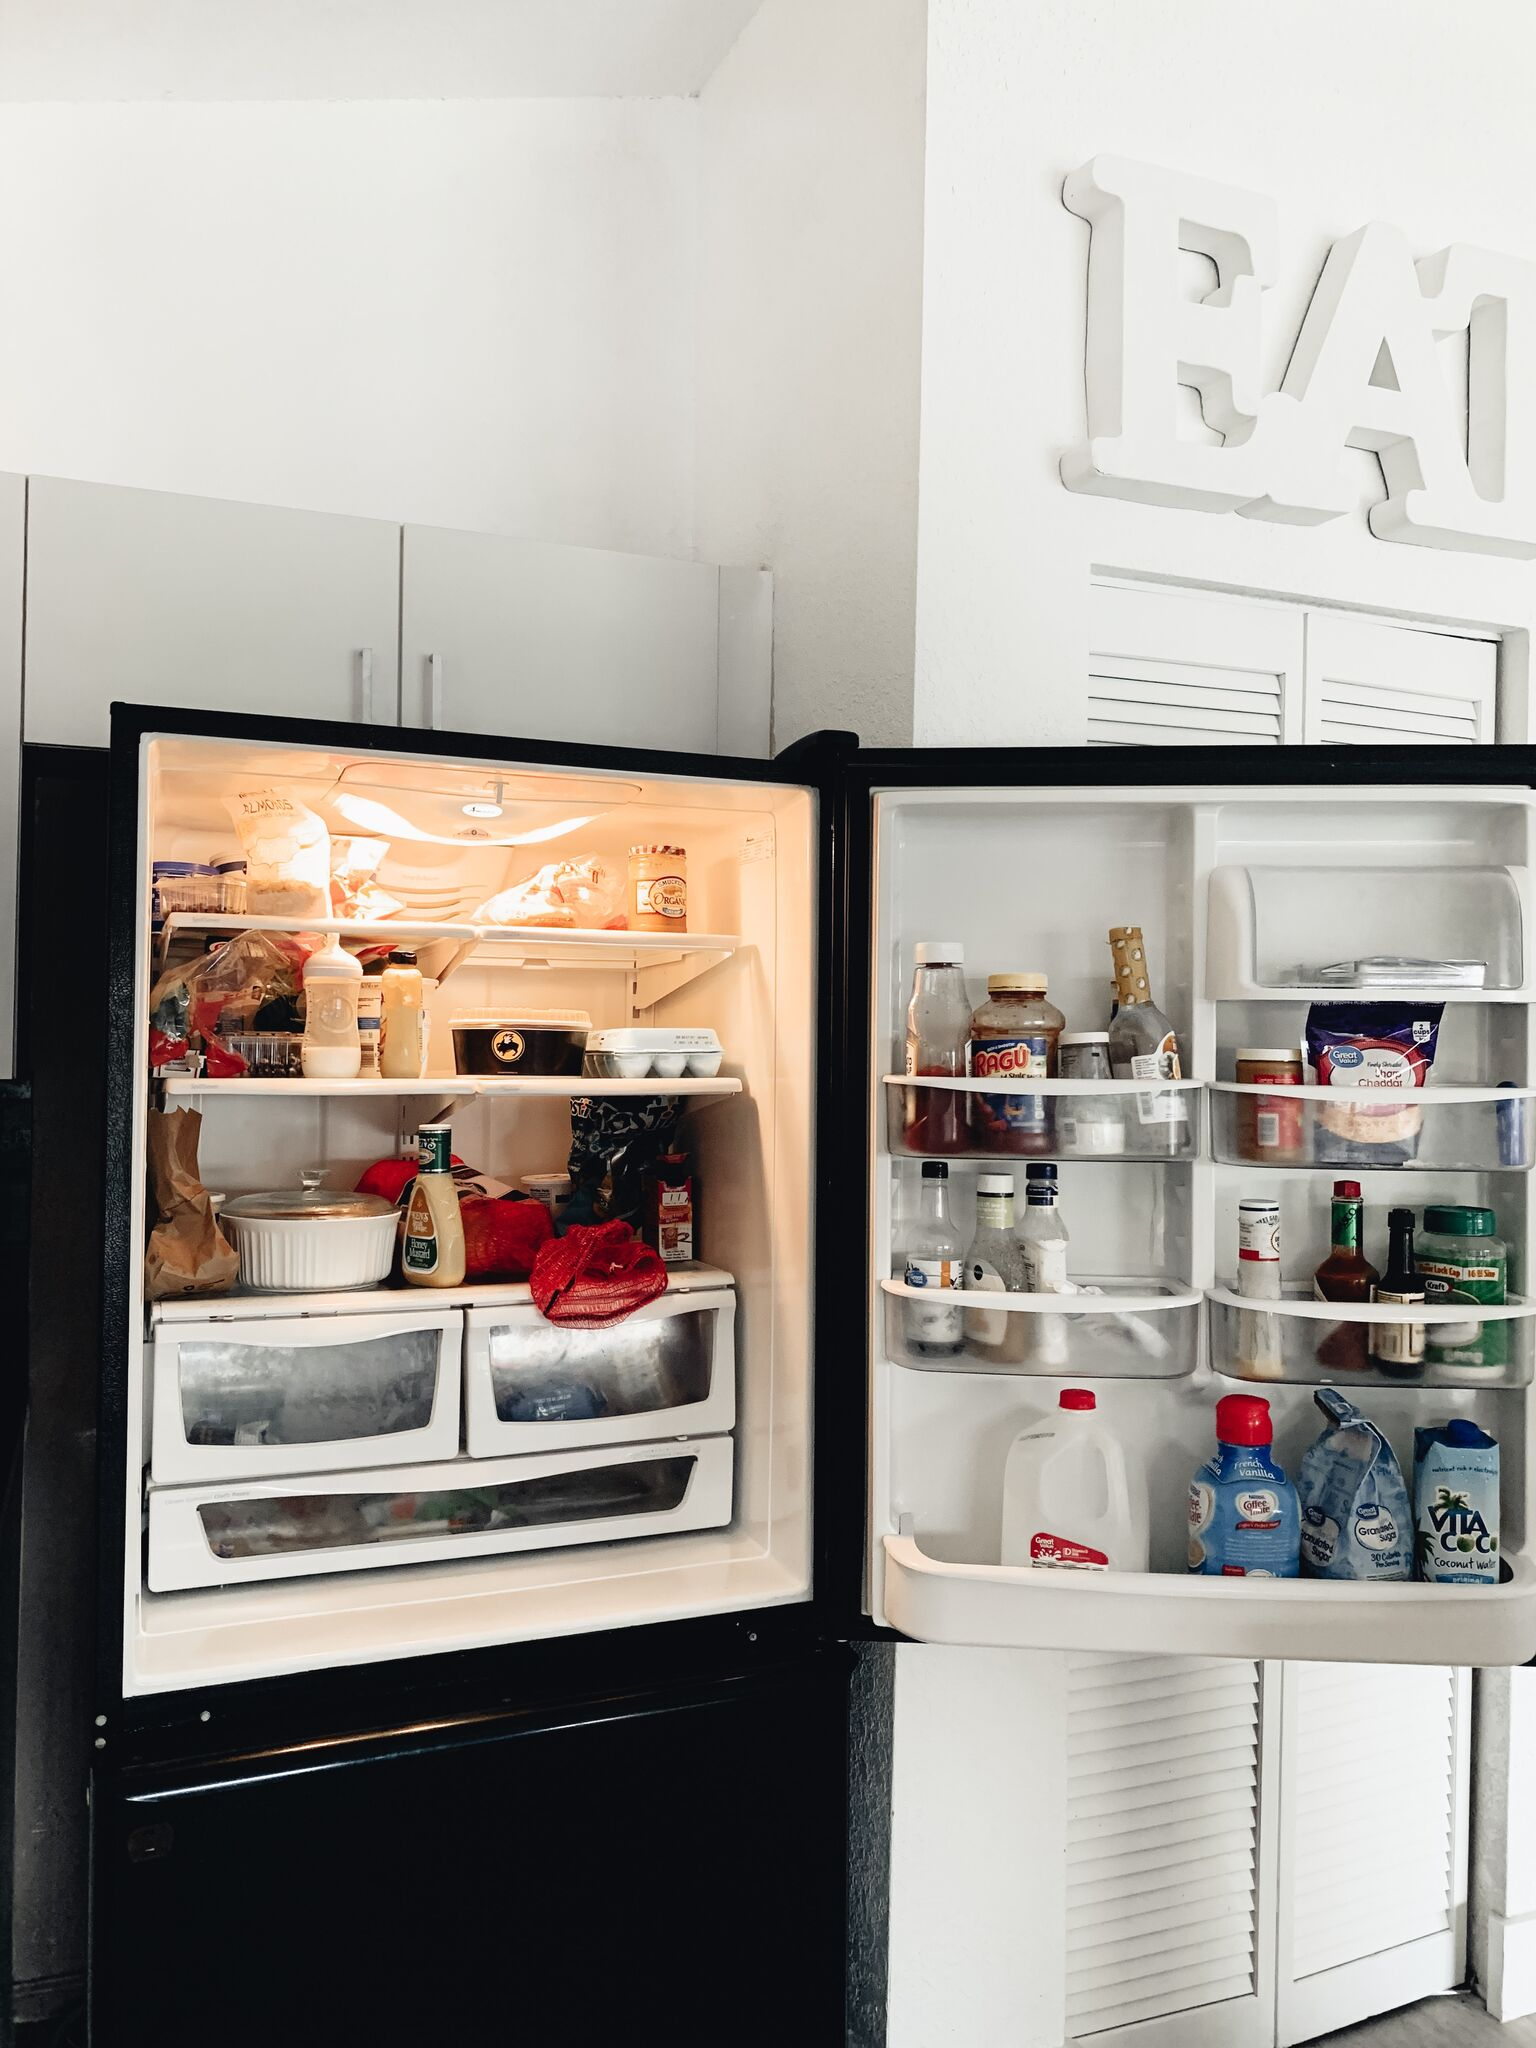 BEFORE + AFTER FRIDGE OVERHAUL WITH THE CONTAINER STORE //5 steps to your dream pantry & fridge